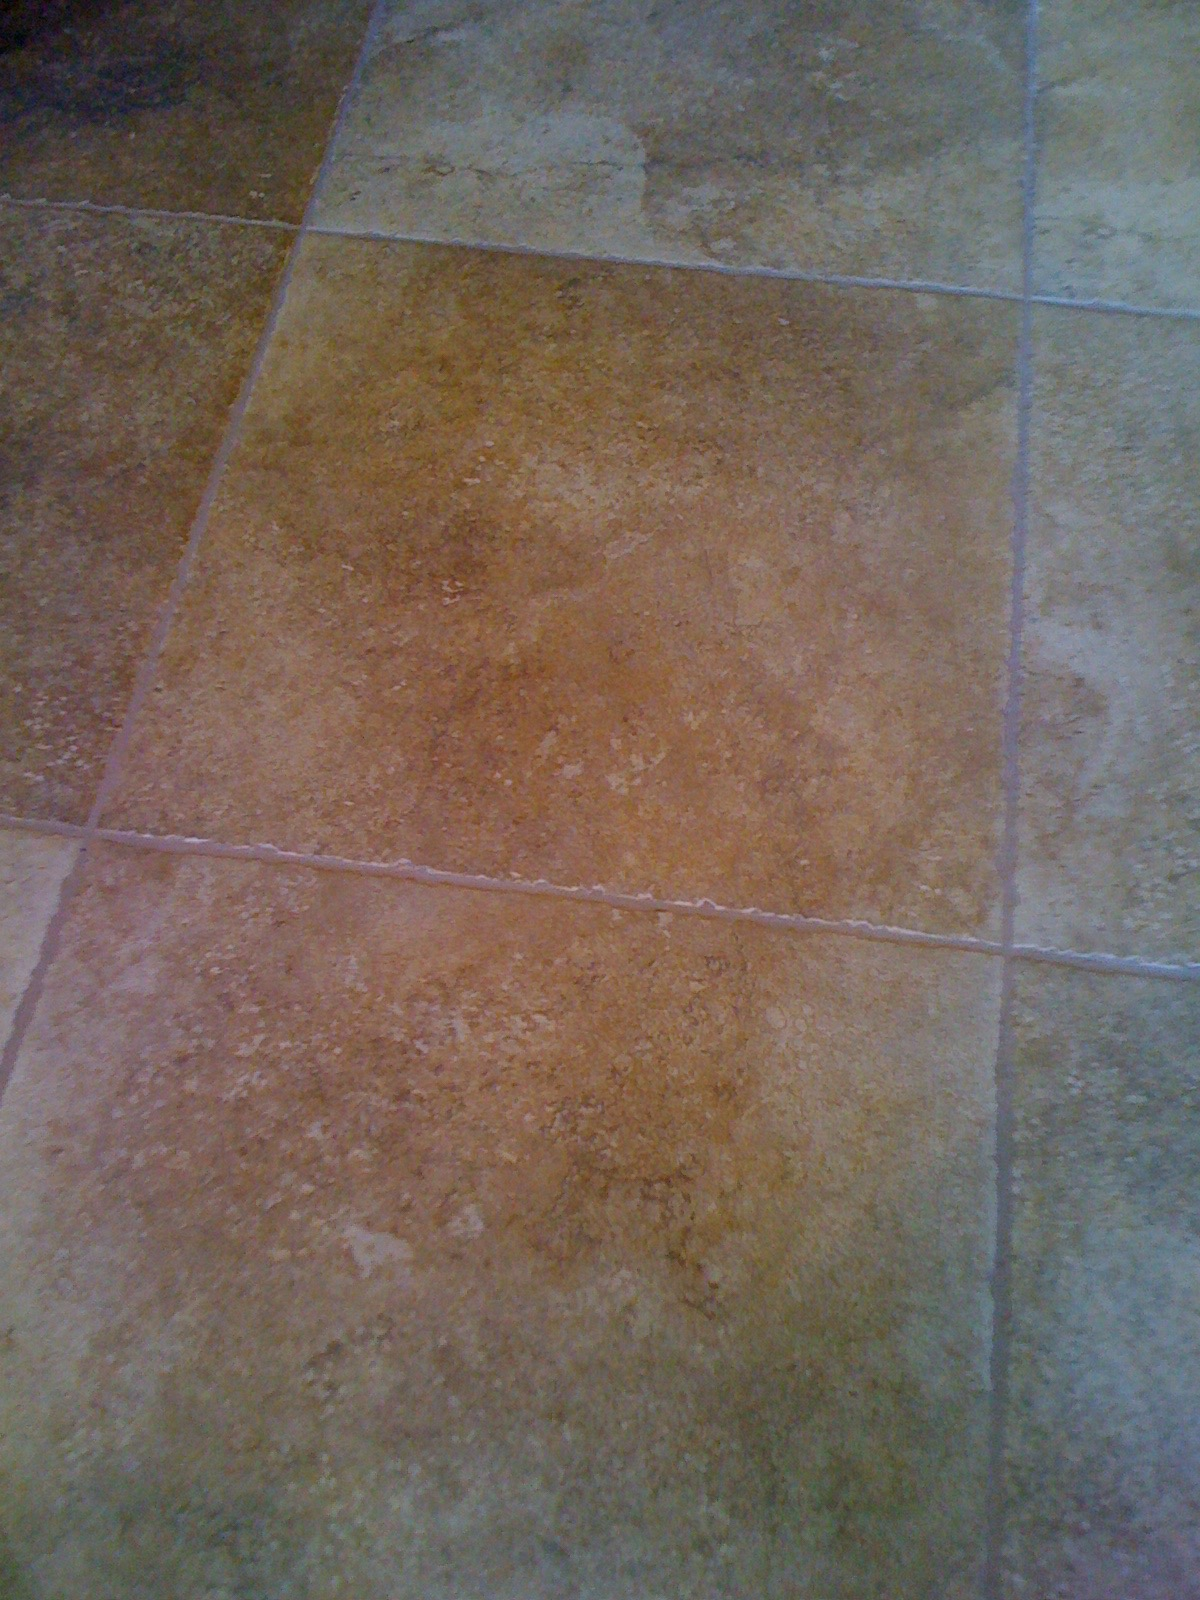 Porcelain tile & grout AFTER cleaning and color sealing - Photo